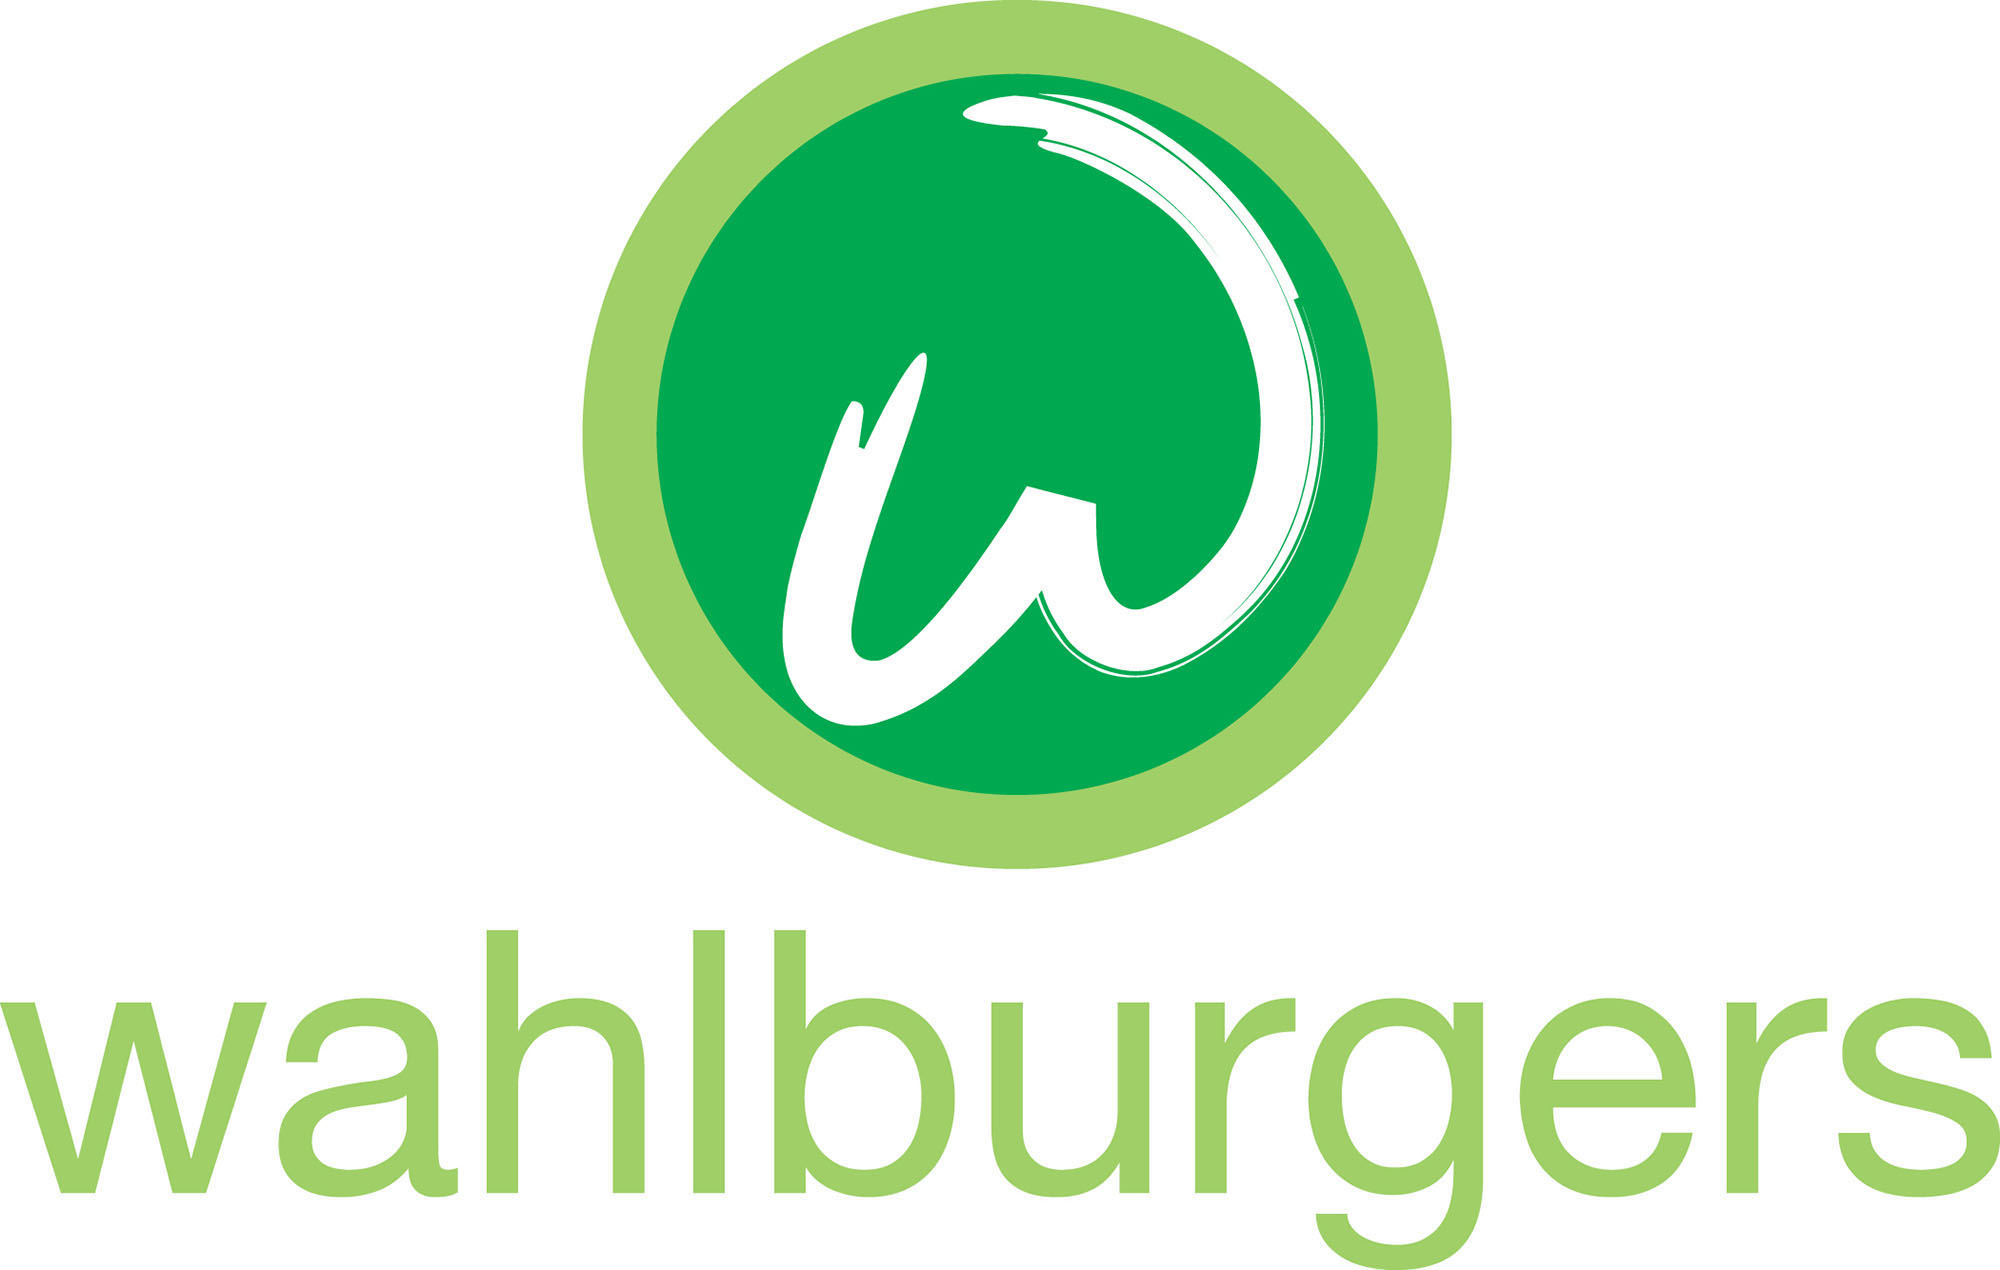 Former employees of Wahlburgers in Brooklyn claim they were denied wages, file lawsuit